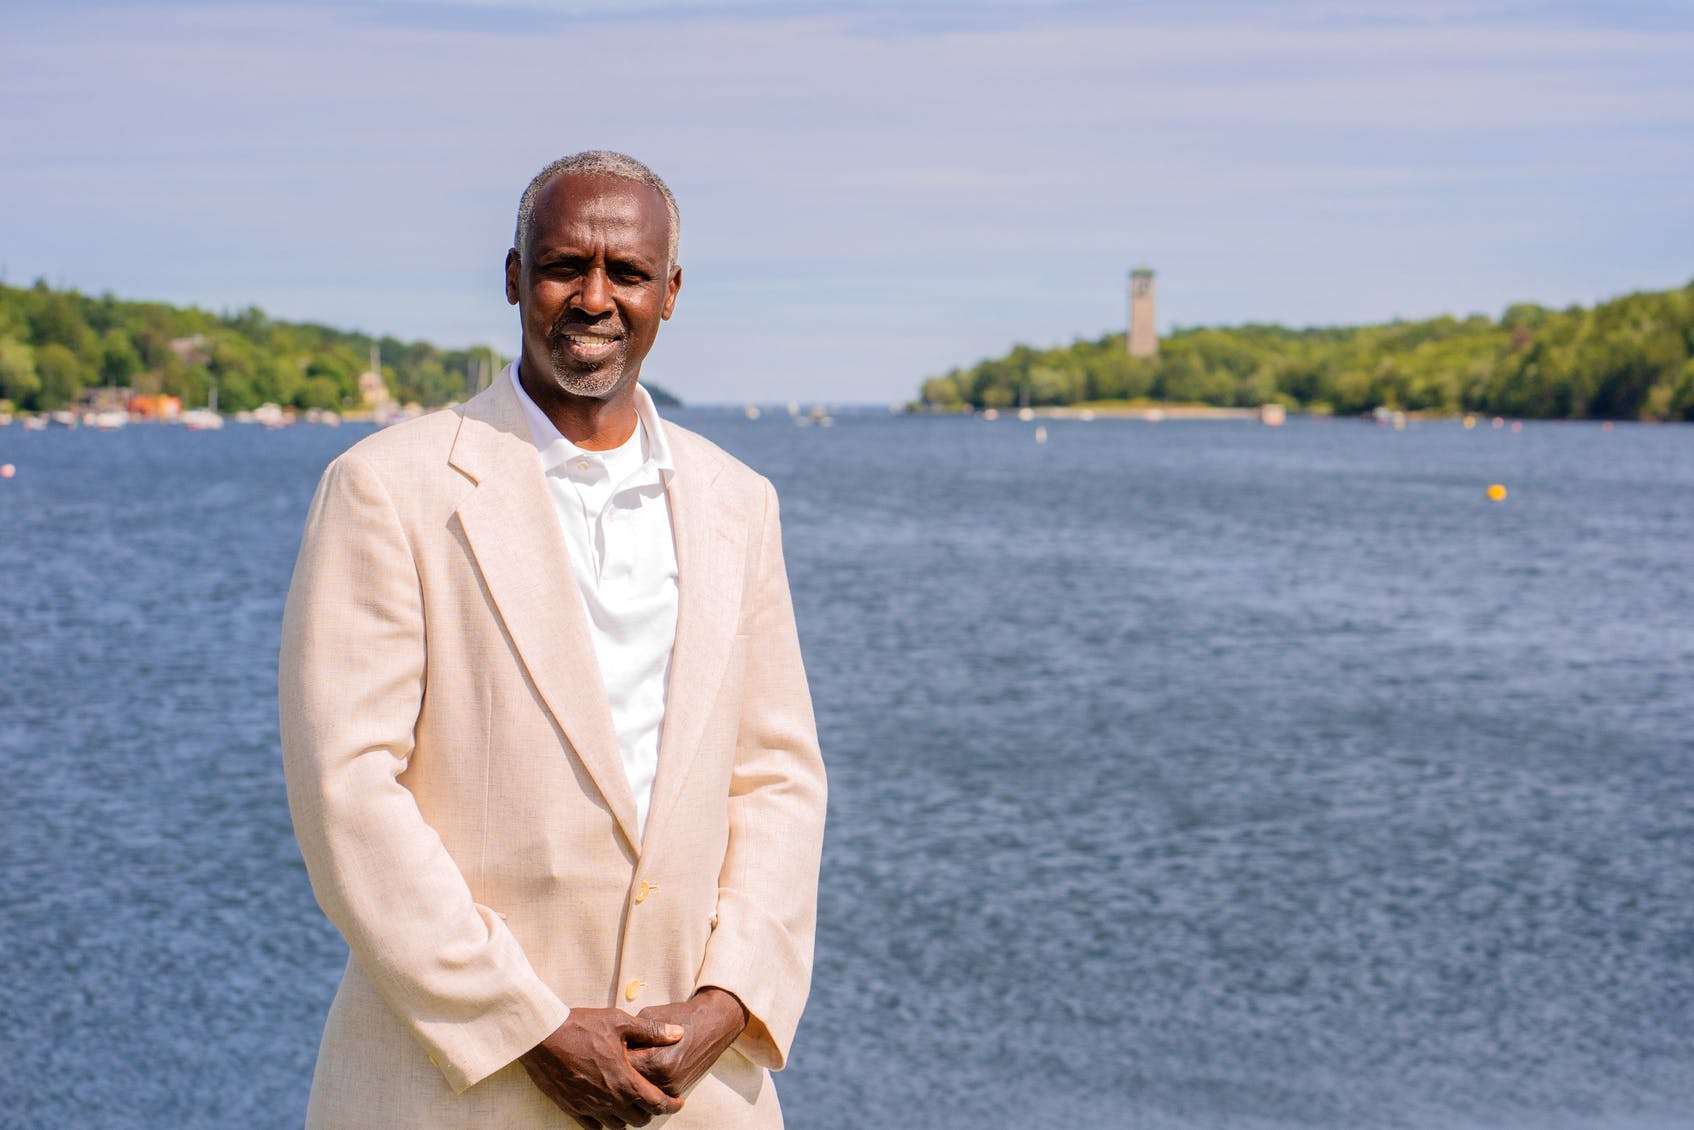 Ali Duale, the Liberal candidate for Halifax Armdale, said he is running in the election to give back to people in Nova Scotia who have always been friendly and supportive. - Contributed by Zahed Hoseyni.